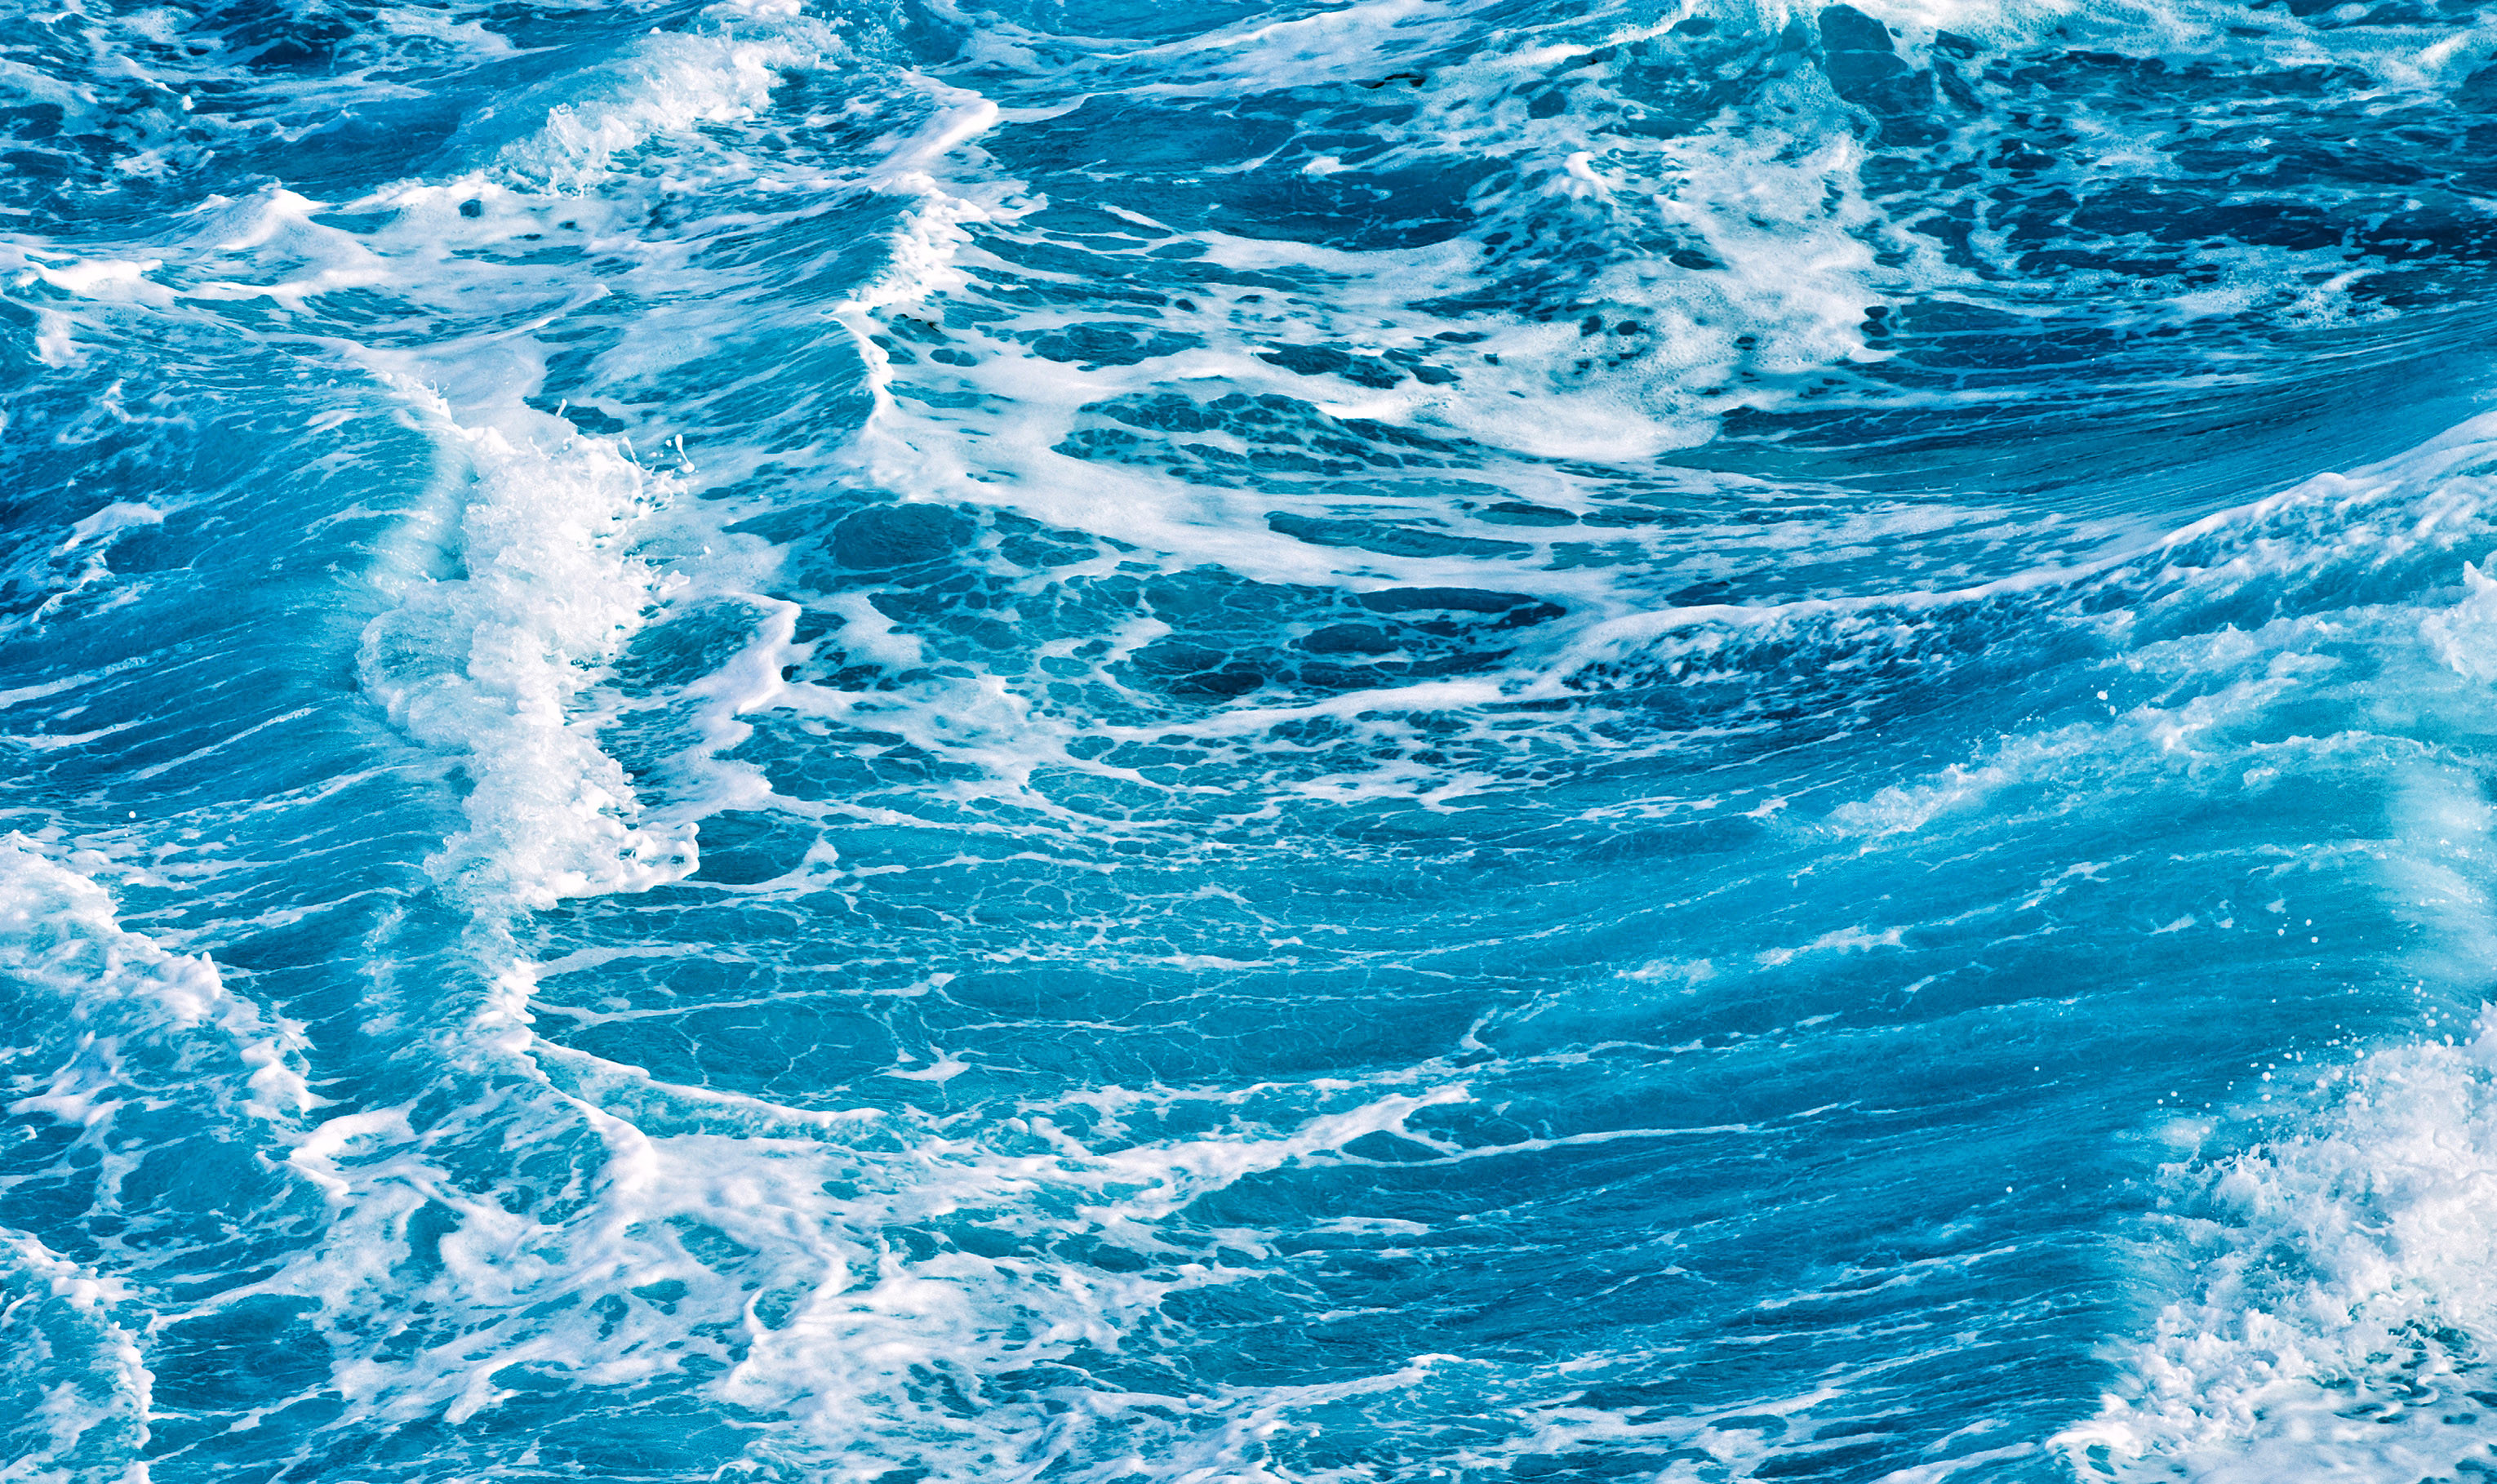 Blue Ocean Background 183 ① Wallpapertag